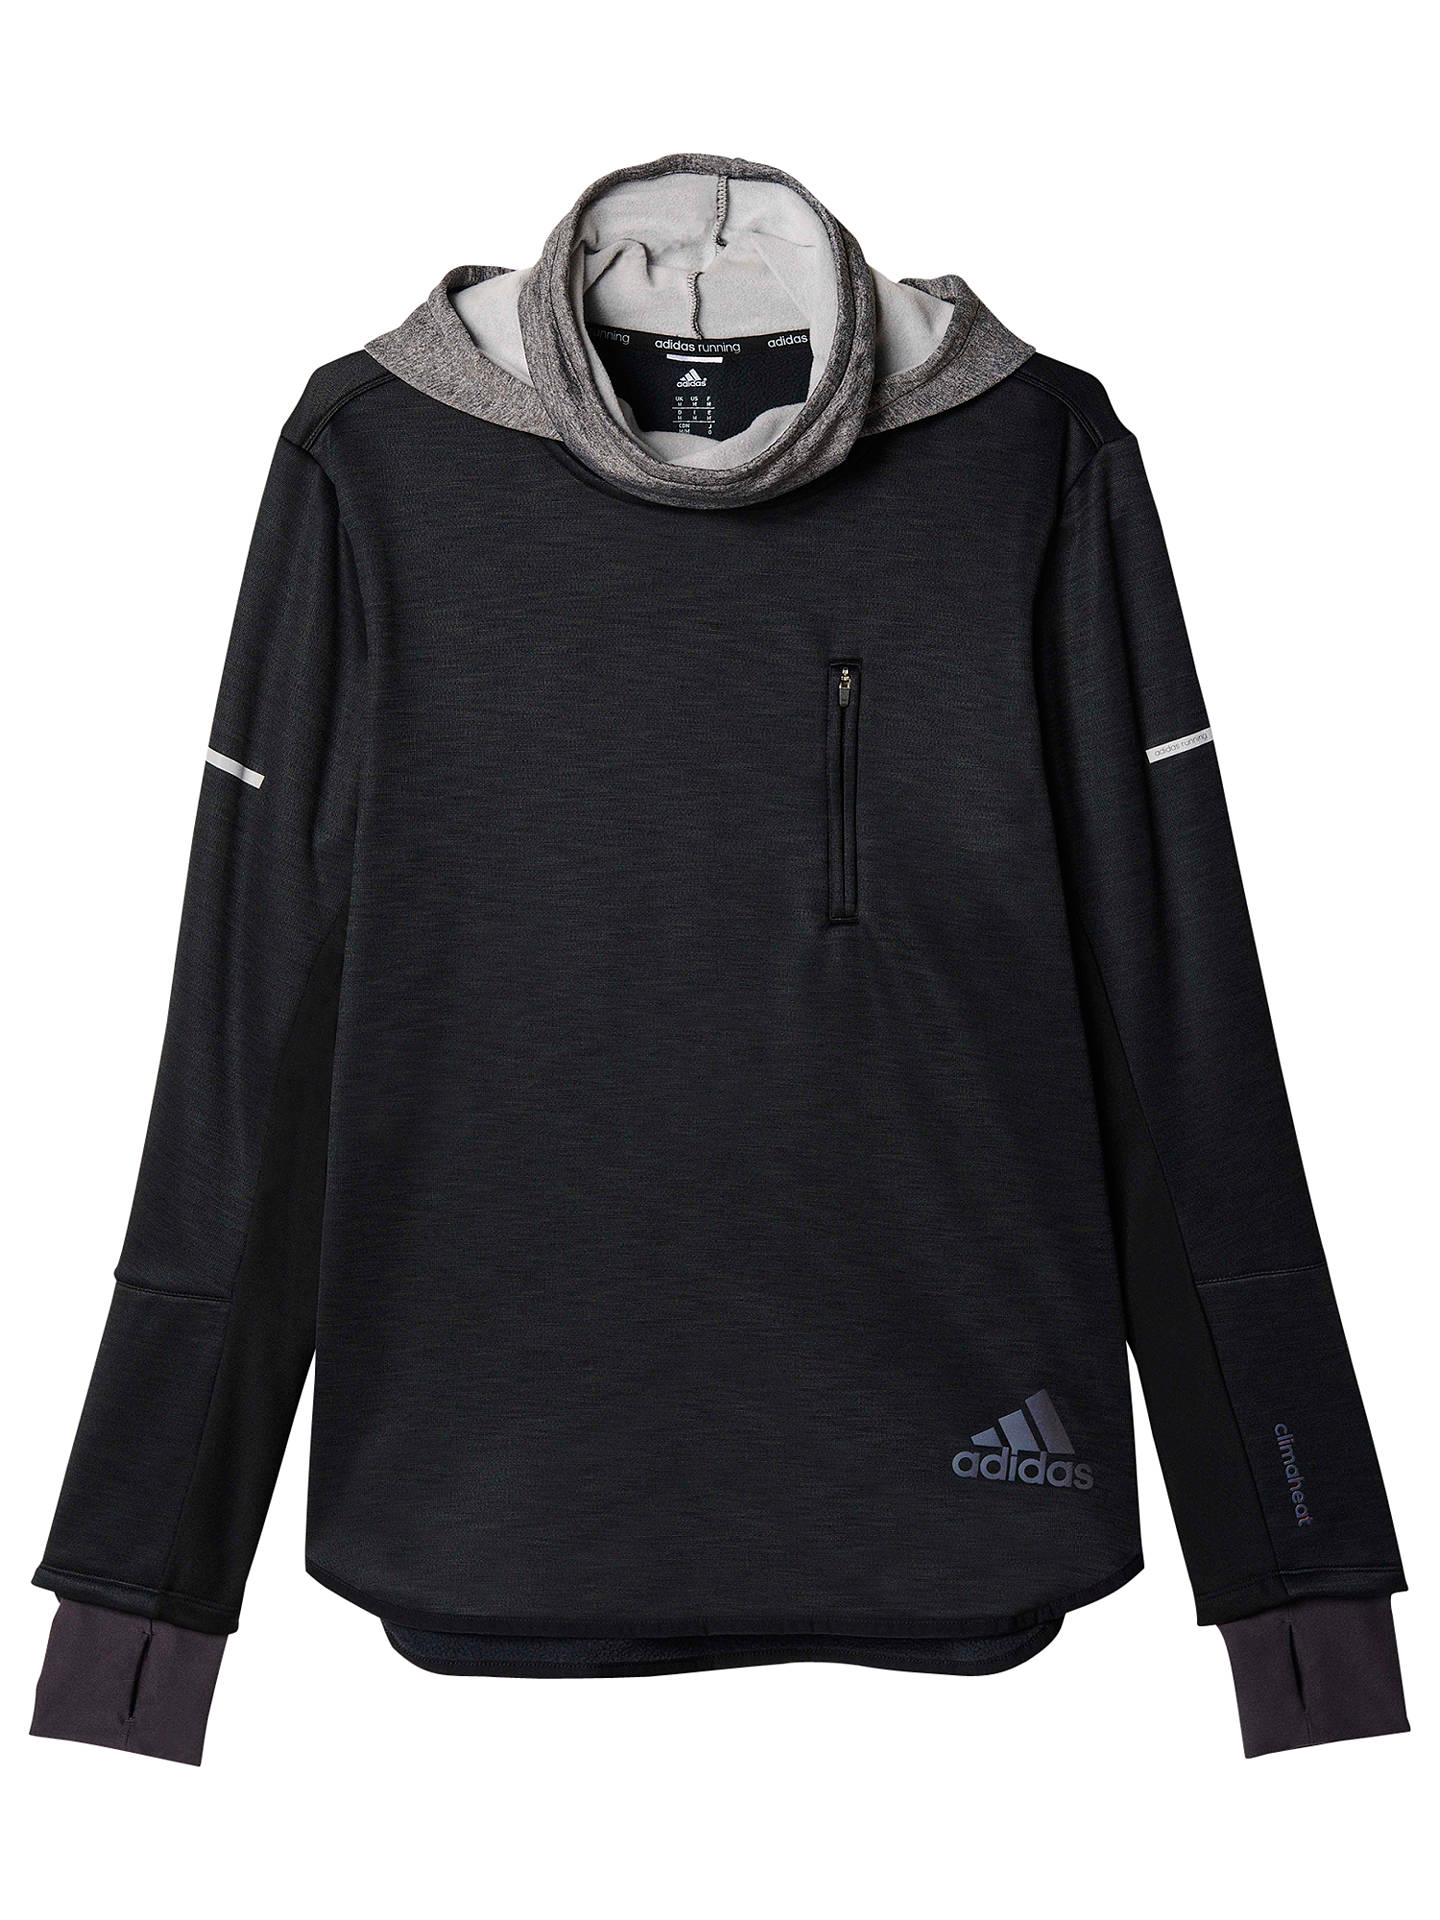 BuyAdidas Sequencials Climaheat Hoodie 781d99b4642